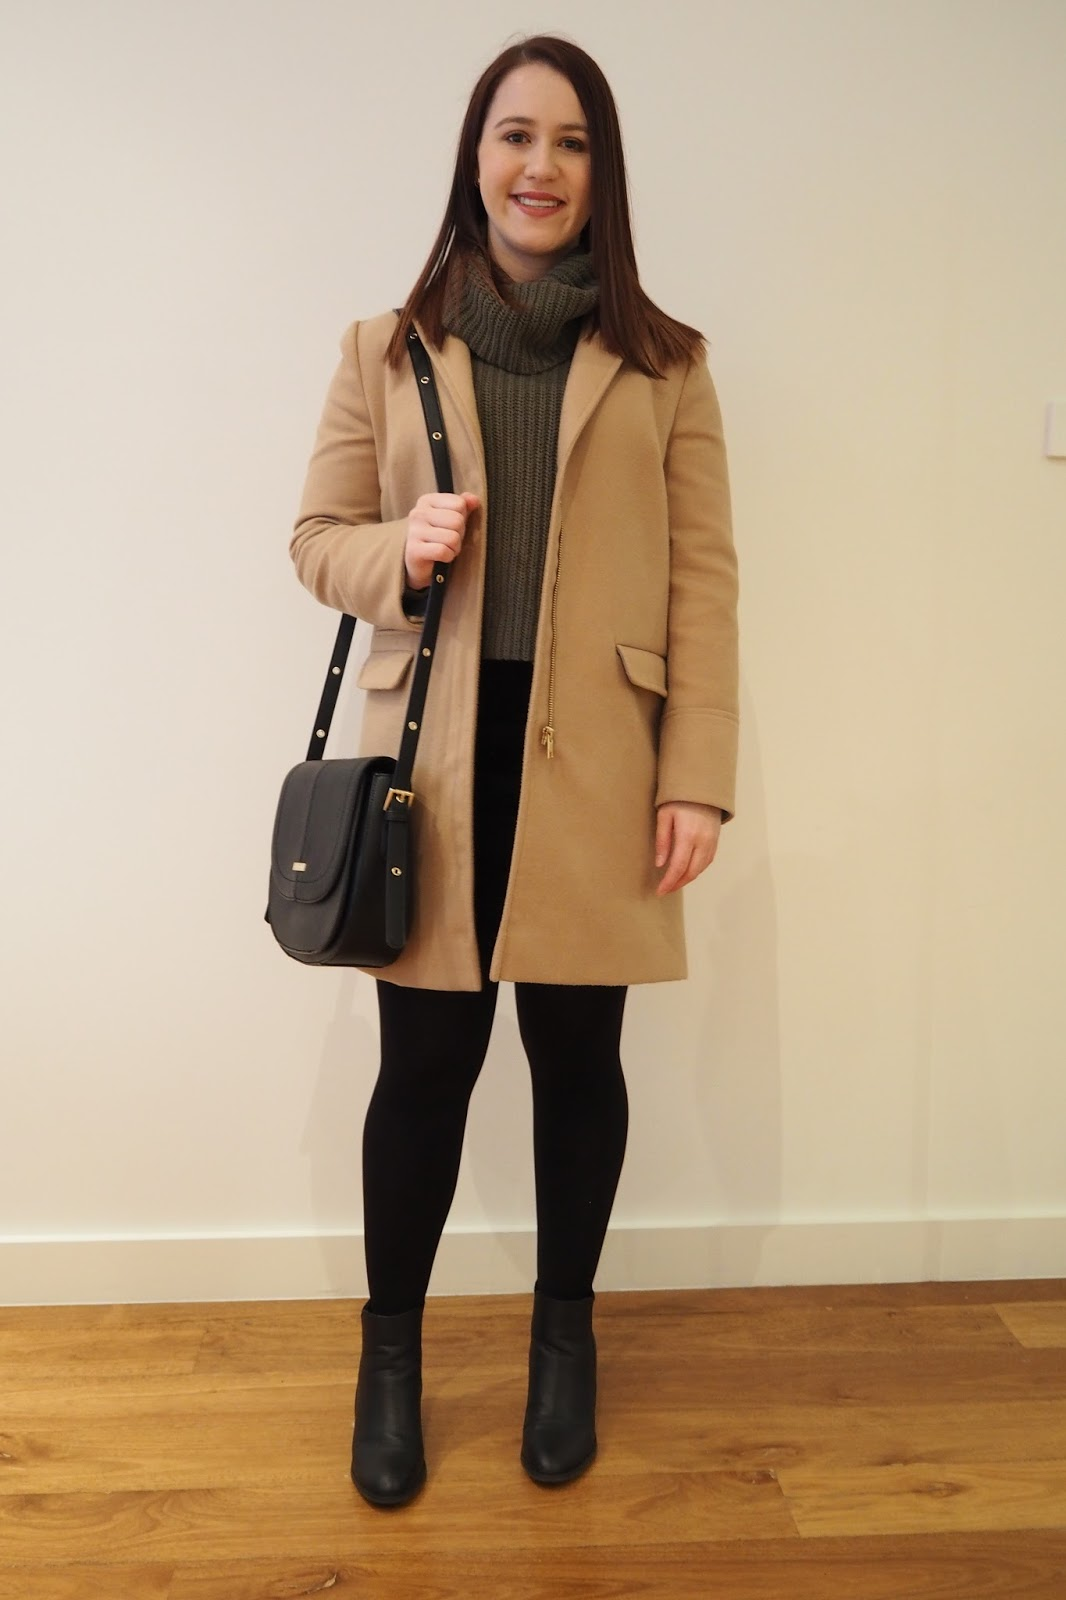 winter outfit, fall outfit, autumn outfit, olive roll neck knit, black cord skirt, black ankle boots, camel coat